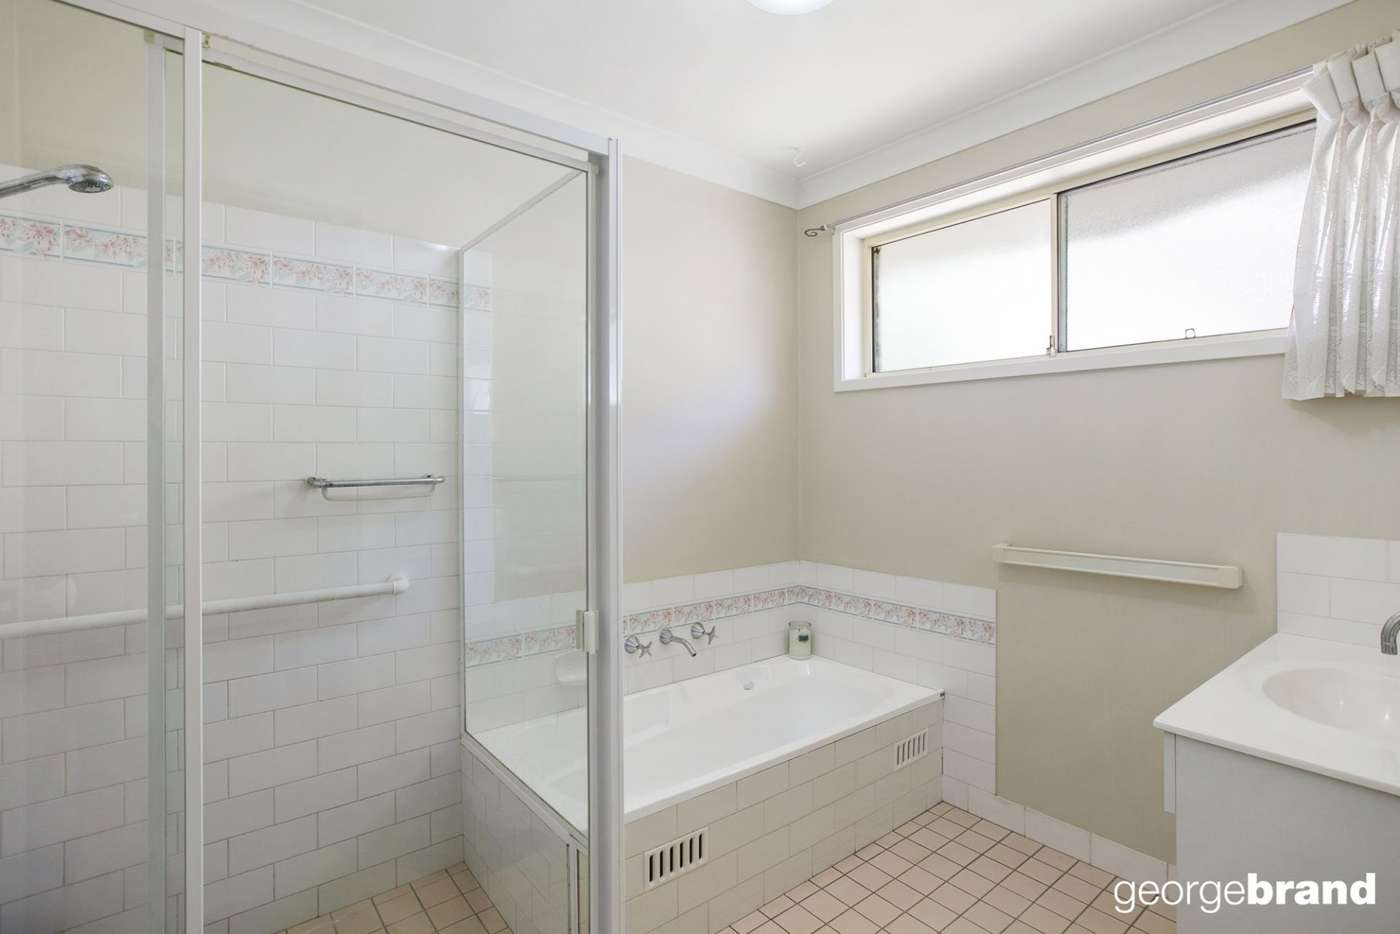 Fifth view of Homely house listing, 2/31 Brushwood Avenue, Kincumber NSW 2251